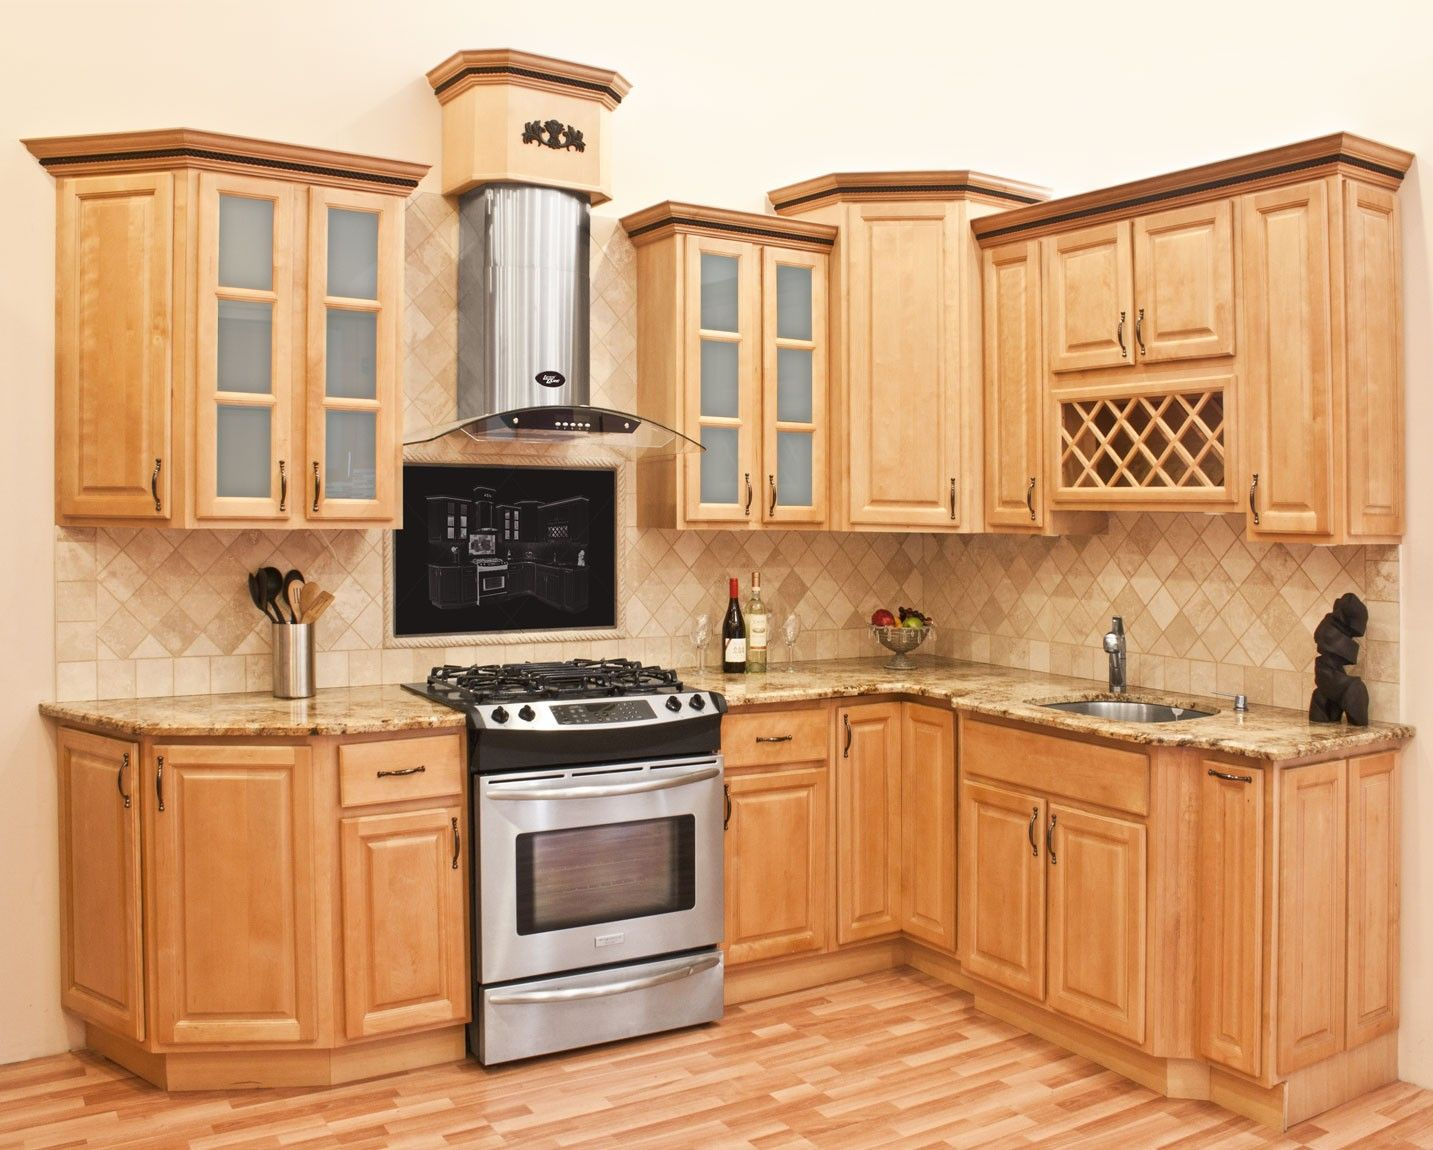 Kitchen Wall Cabinets Philadelphia Maple Kitchen Cabinets Kitchen Remodel Small Kitchen Remodel